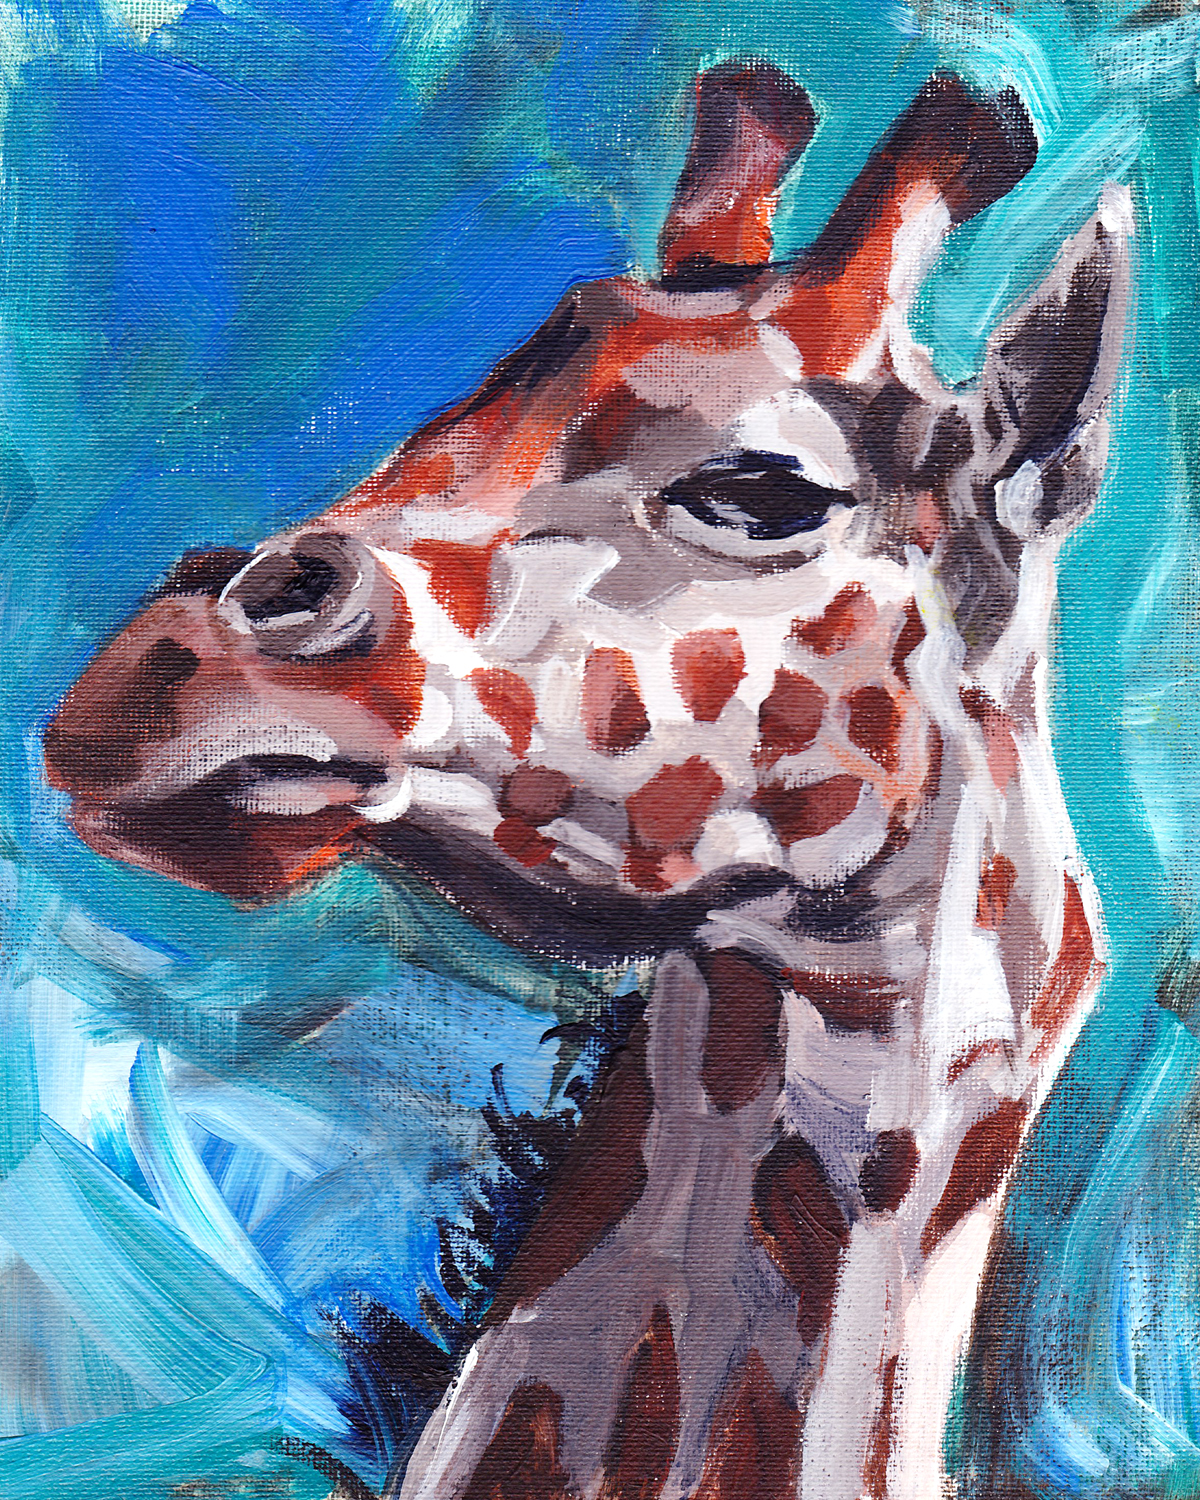 Giraffe painting in oil on canvas, wildlife artist Crystal Smith BC Canada